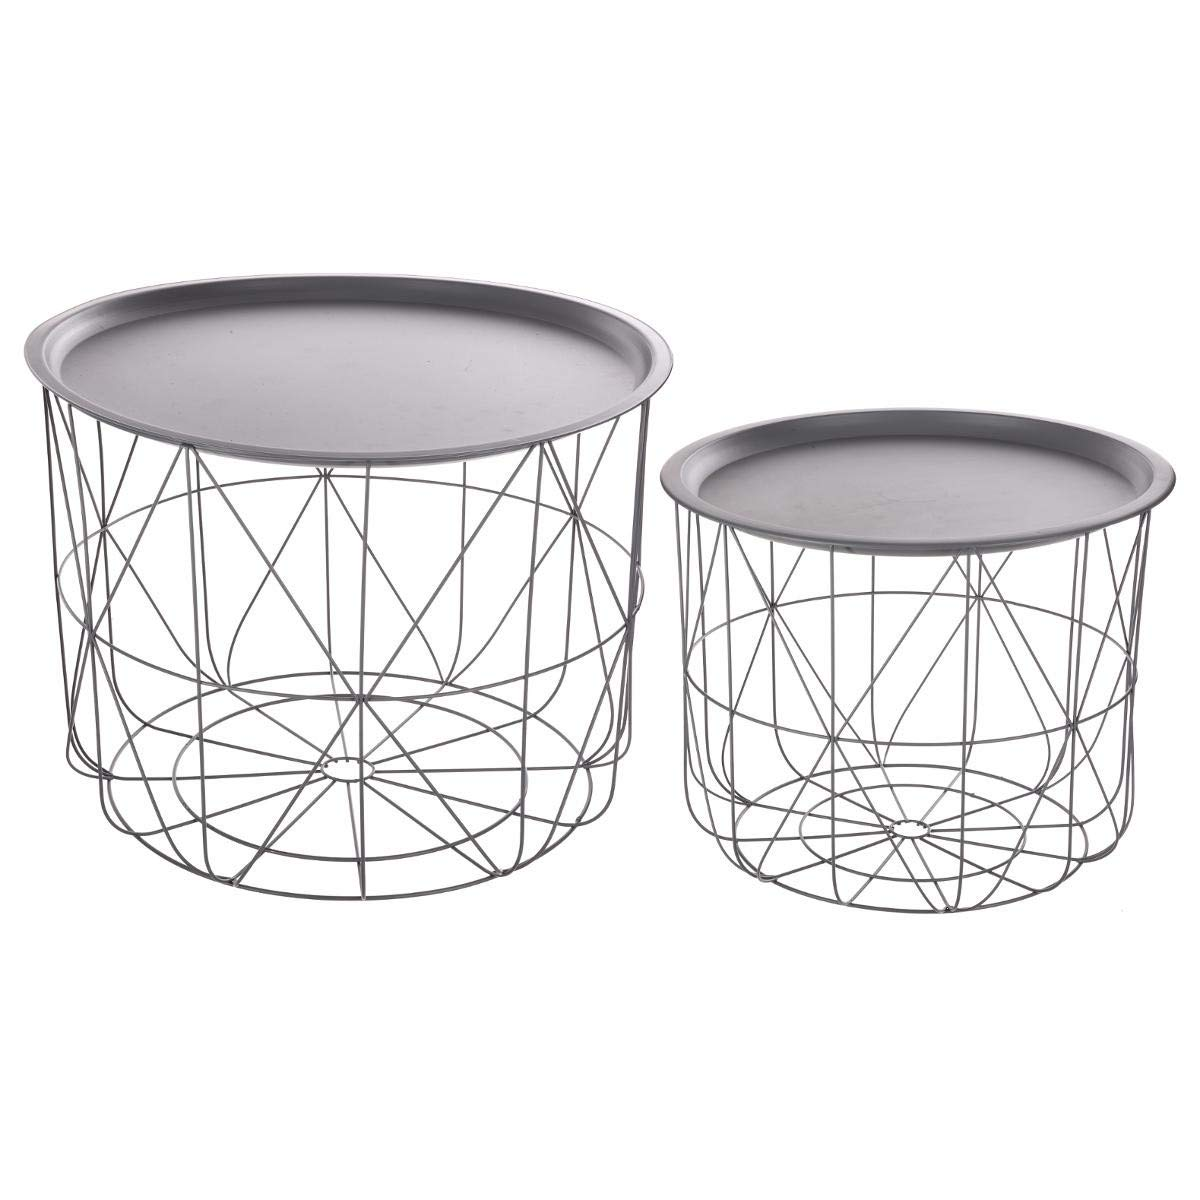 Atmosphera 2 nested coffee tables removable table tops- Modern design- Colour GREY